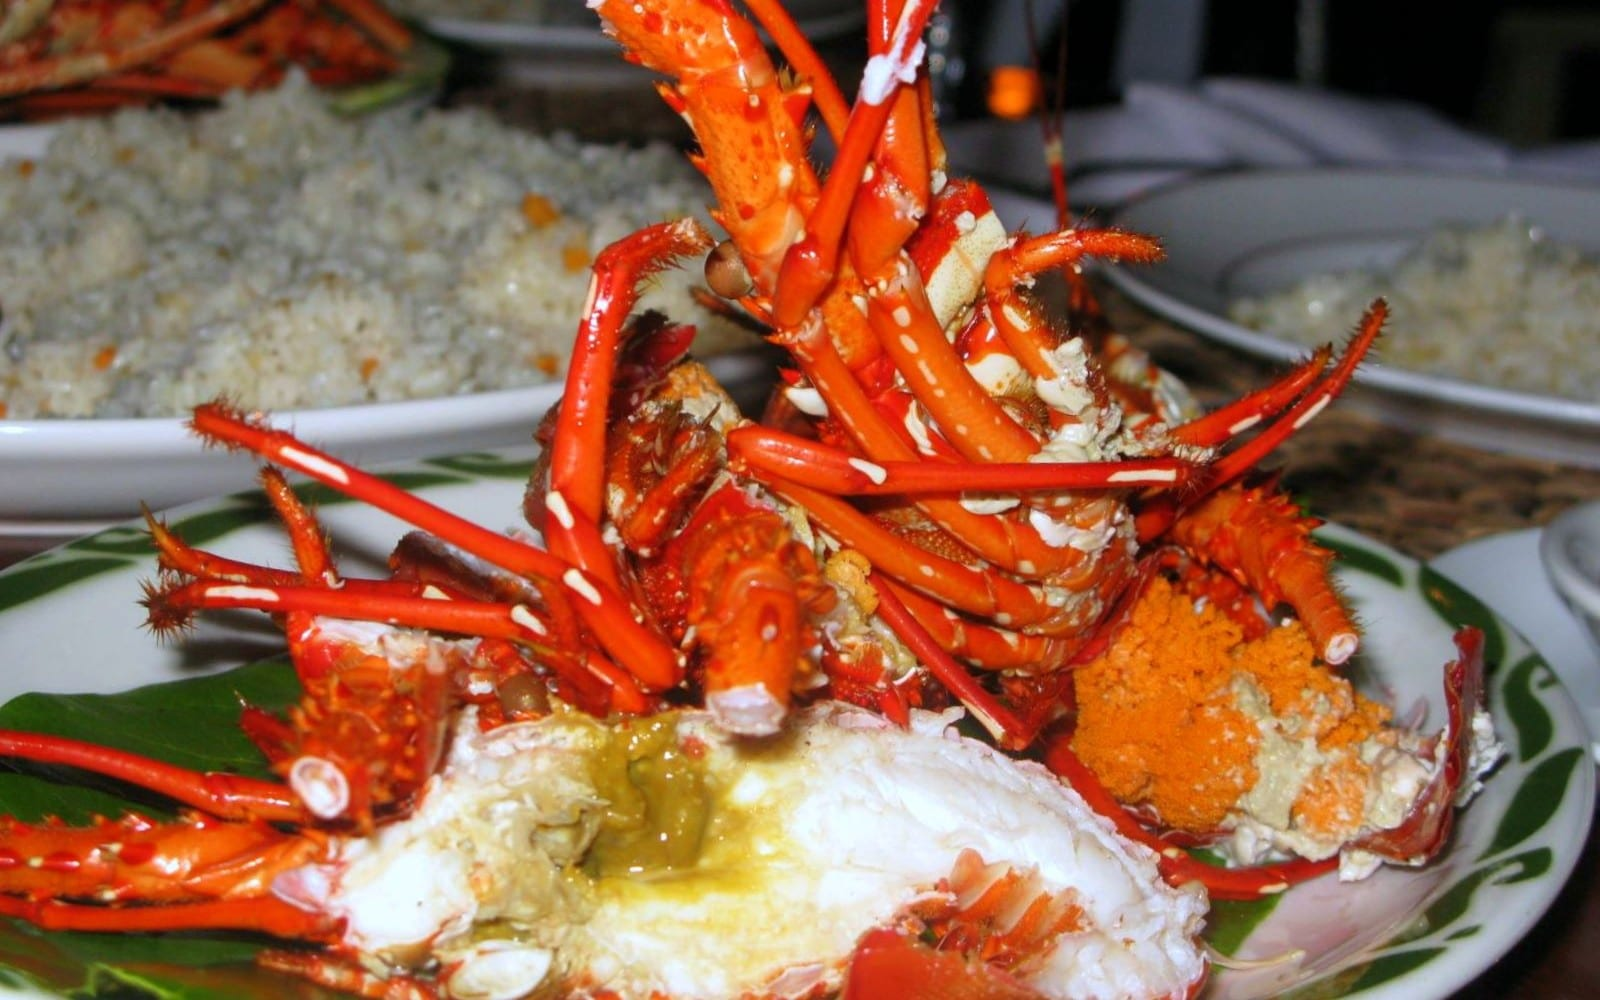 A delicious lobster dinner in El Nido, Palawan